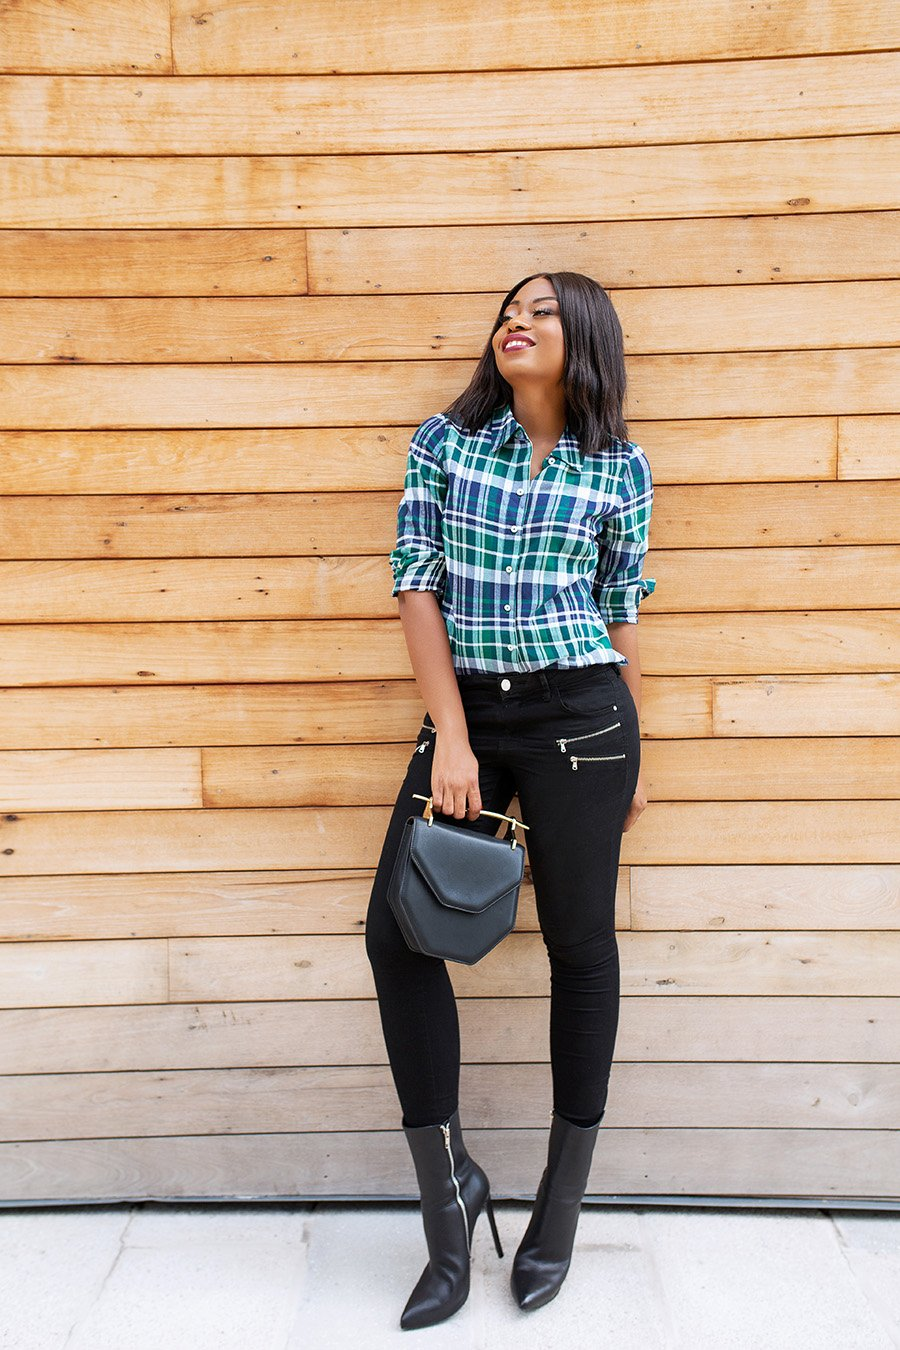 stella-adewunmi-shares-casual-holiday-outfits-for-every-occasion